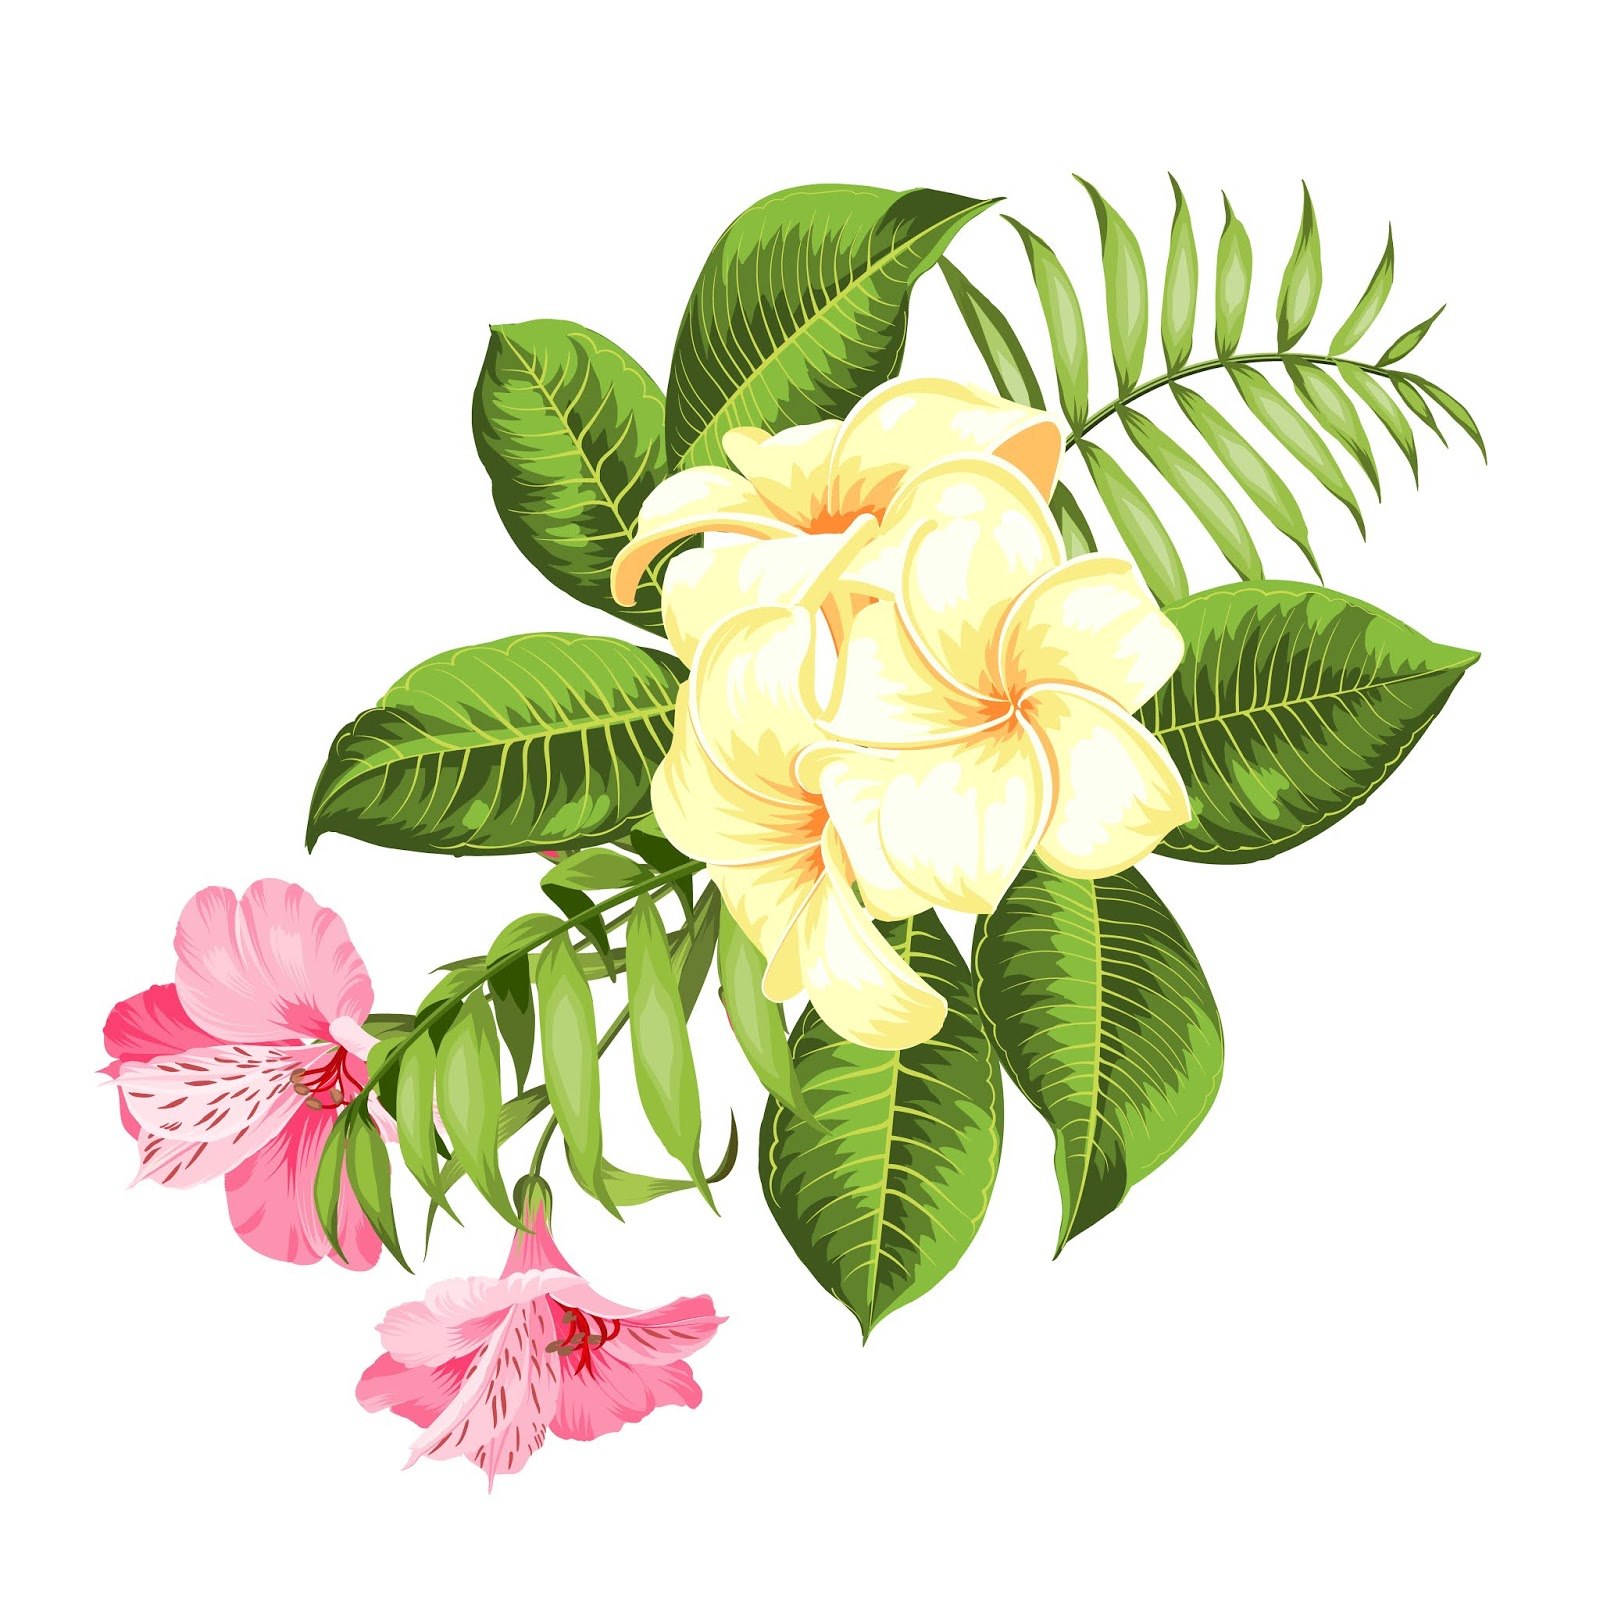 Tropical Flower White Background Vector Illustration Free Download Vector CDR, AI, EPS and PNG Formats